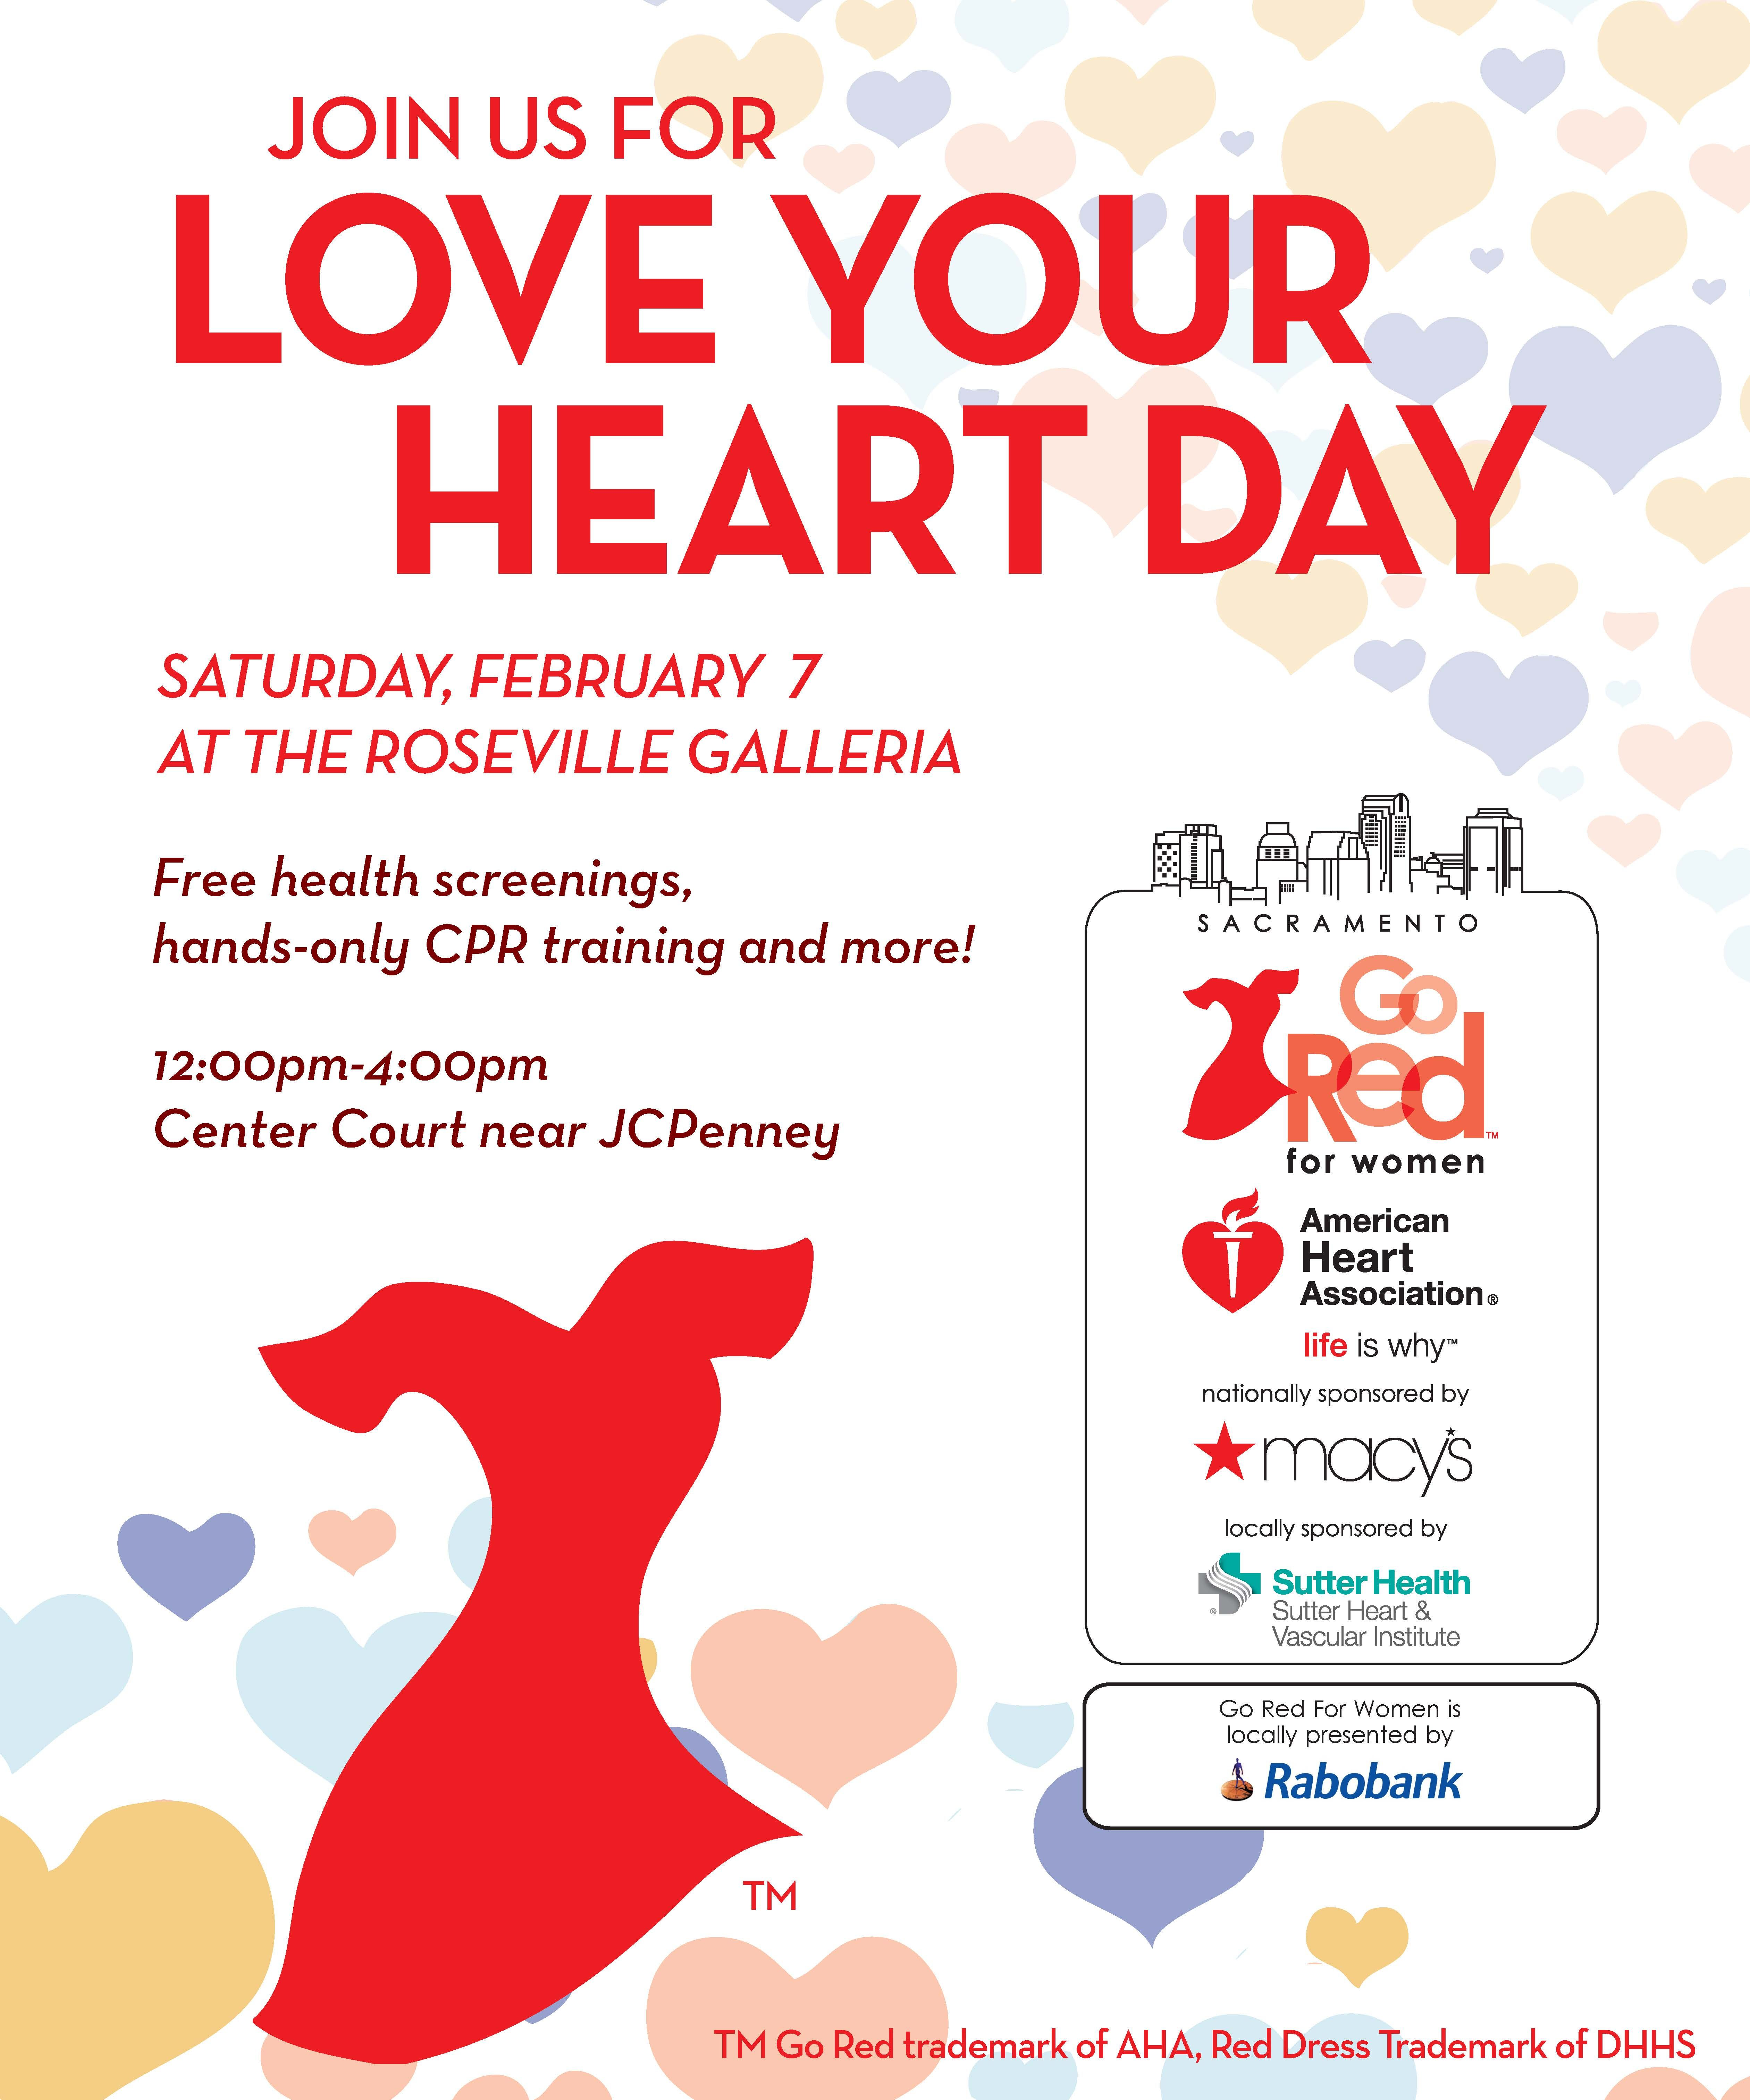 Join us for LoveYourHeartDay at the